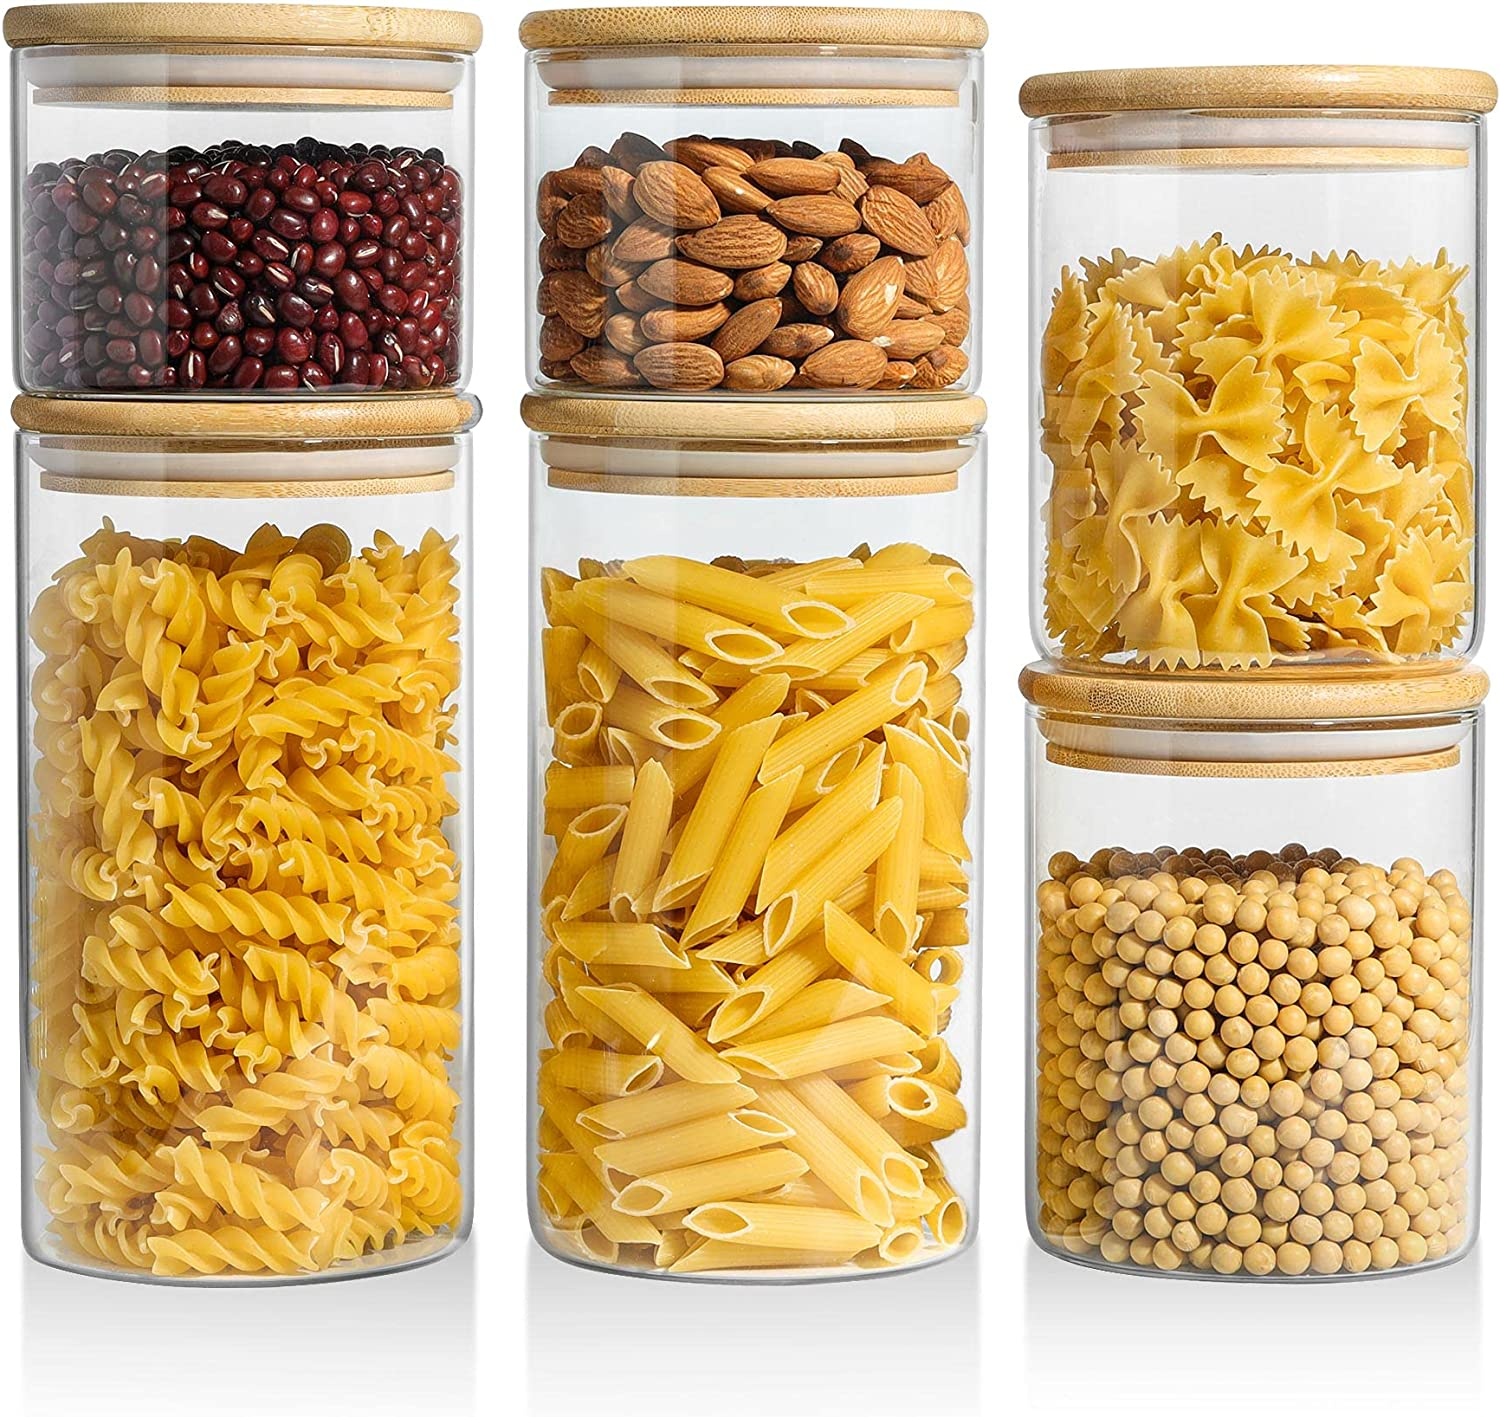 ComSaf Food Storage Container with Airtight Bamboo Lid Set of 6, Clear Glass Canister Food Jar with Sealing Lid Kitchen Pantry Storage Container for Sugar Flour Cereal Pasta Snack Coffee Beans